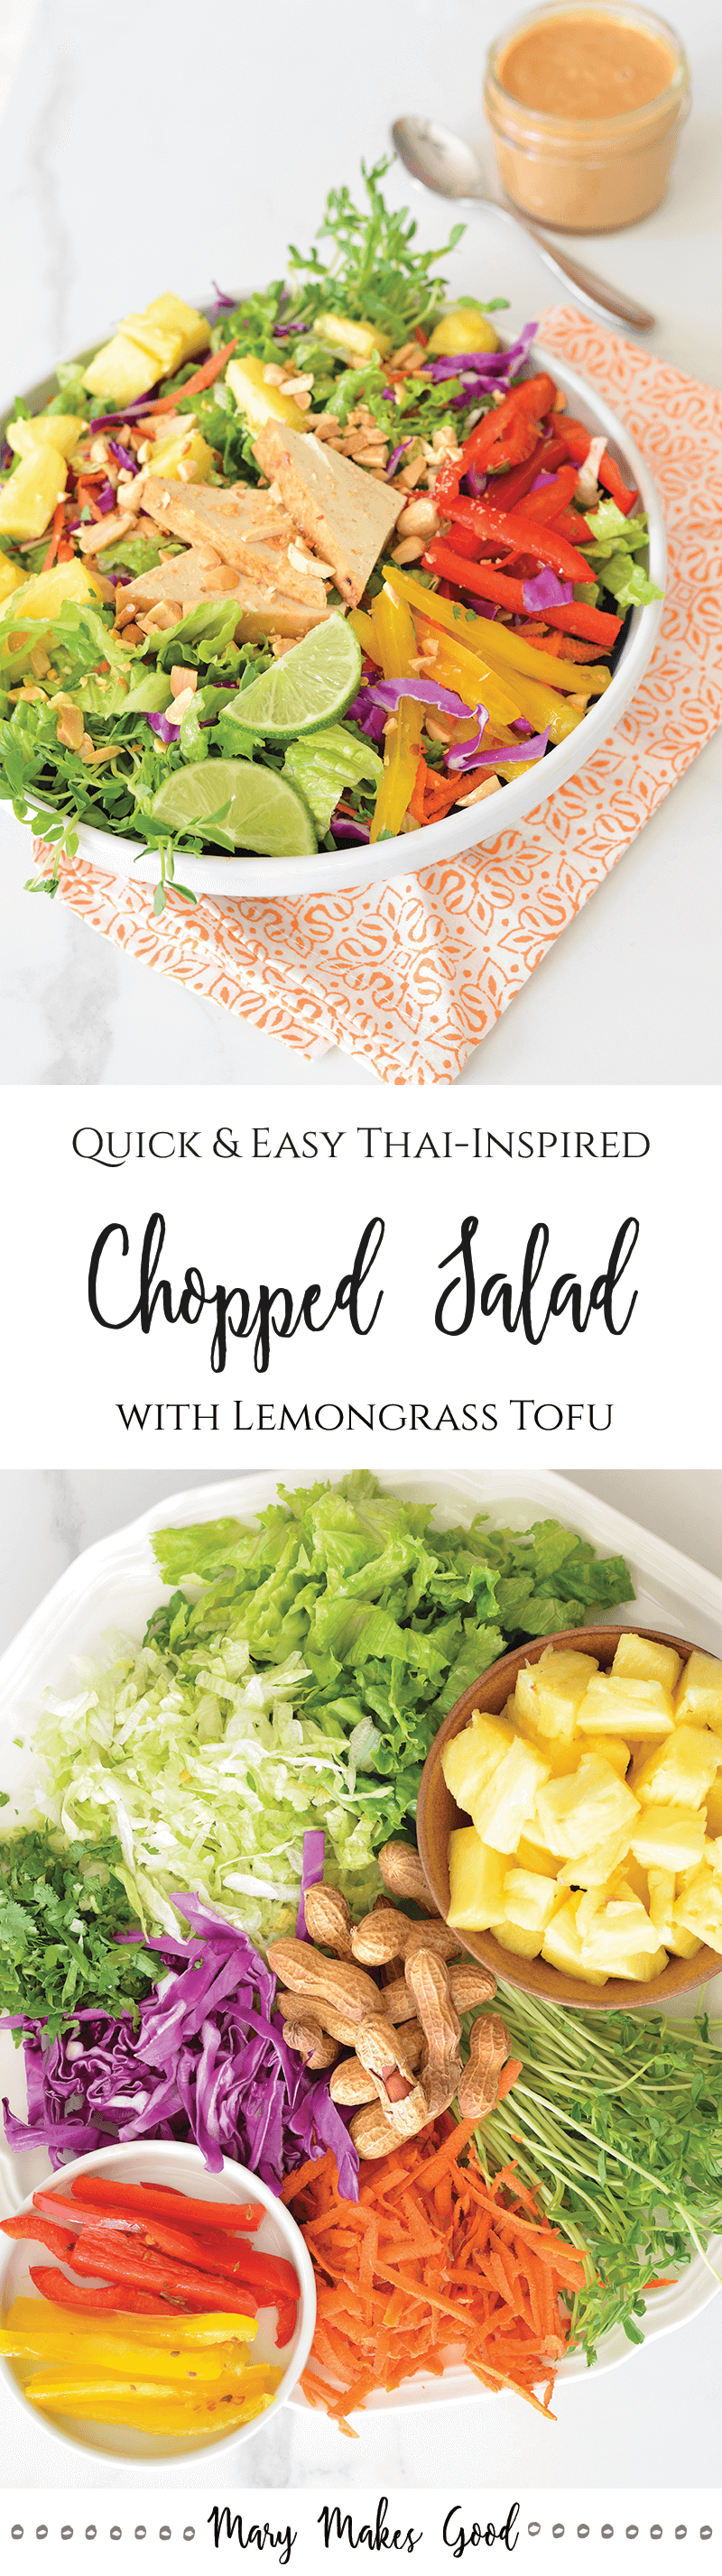 Crunchy Chopped Salad with Lemongrass Tofu & Peanut Dressing - A Quick and Easy Recipe with Tons of Flavor!